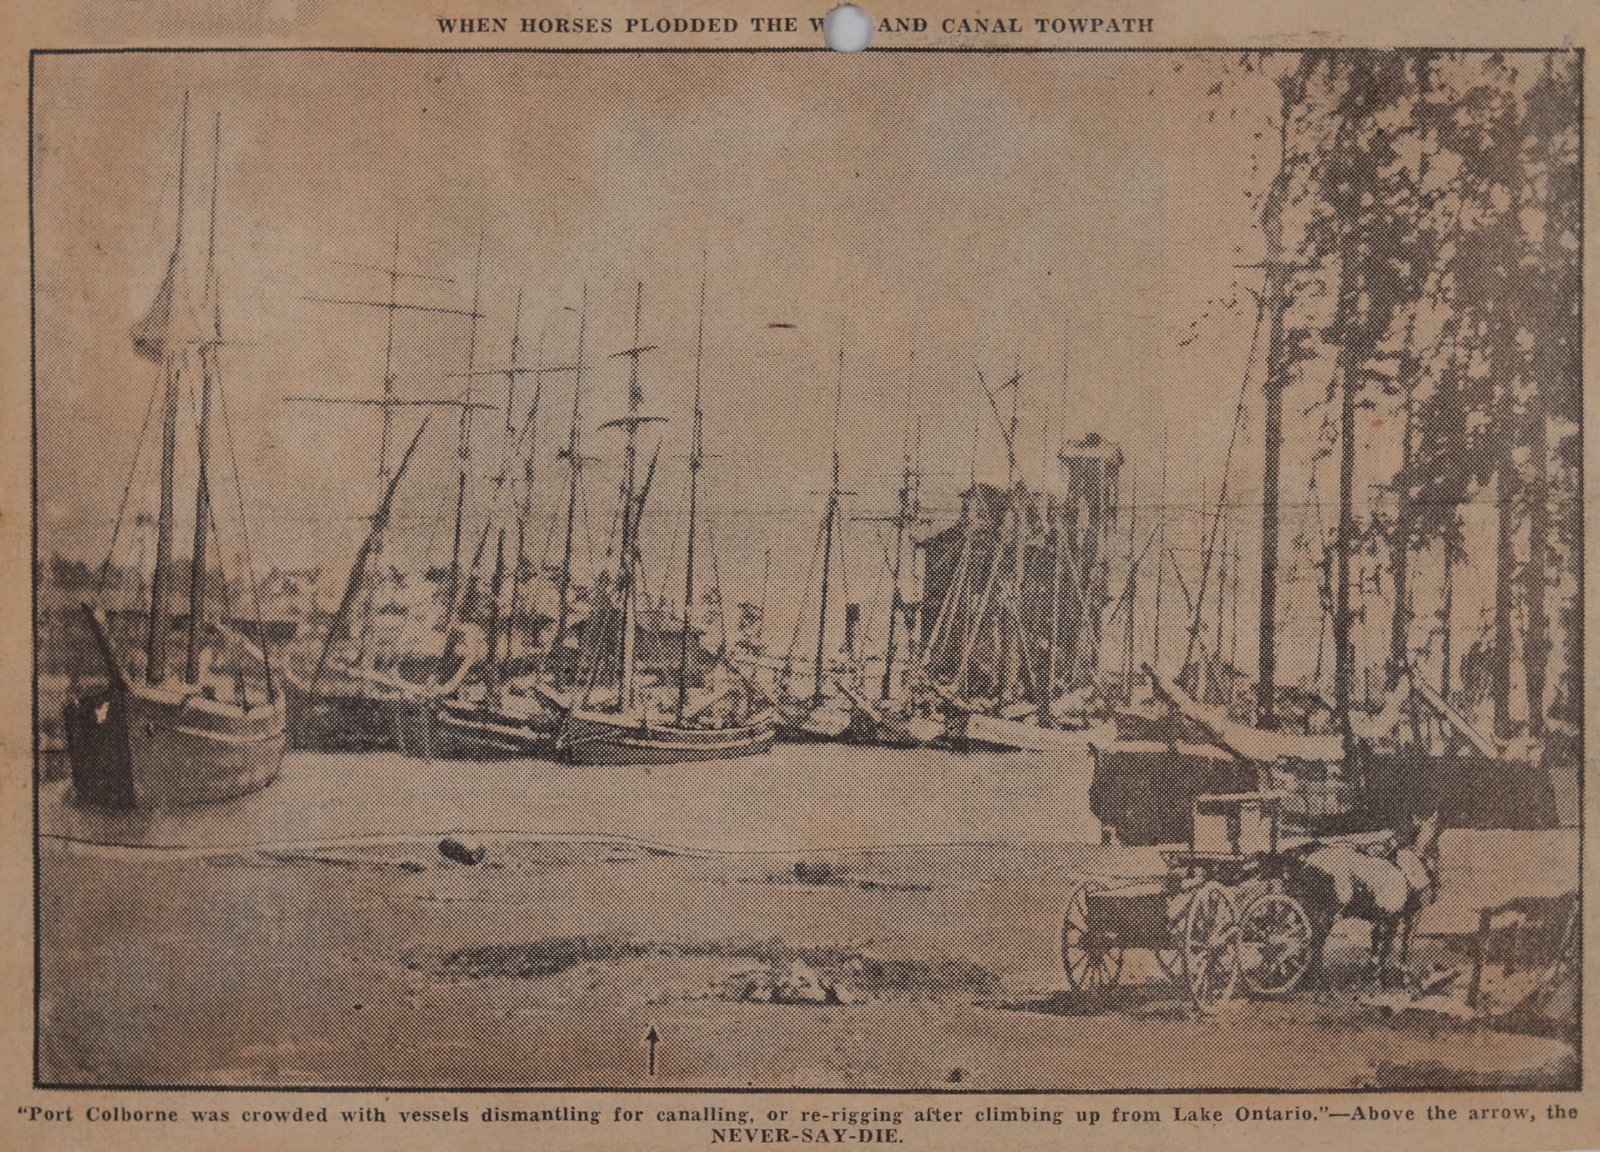 """Lakes to Liverpool Eighty Years Ago in """"NEVER SAY DIE"""": Schooner Days DLXXXV (585)"""